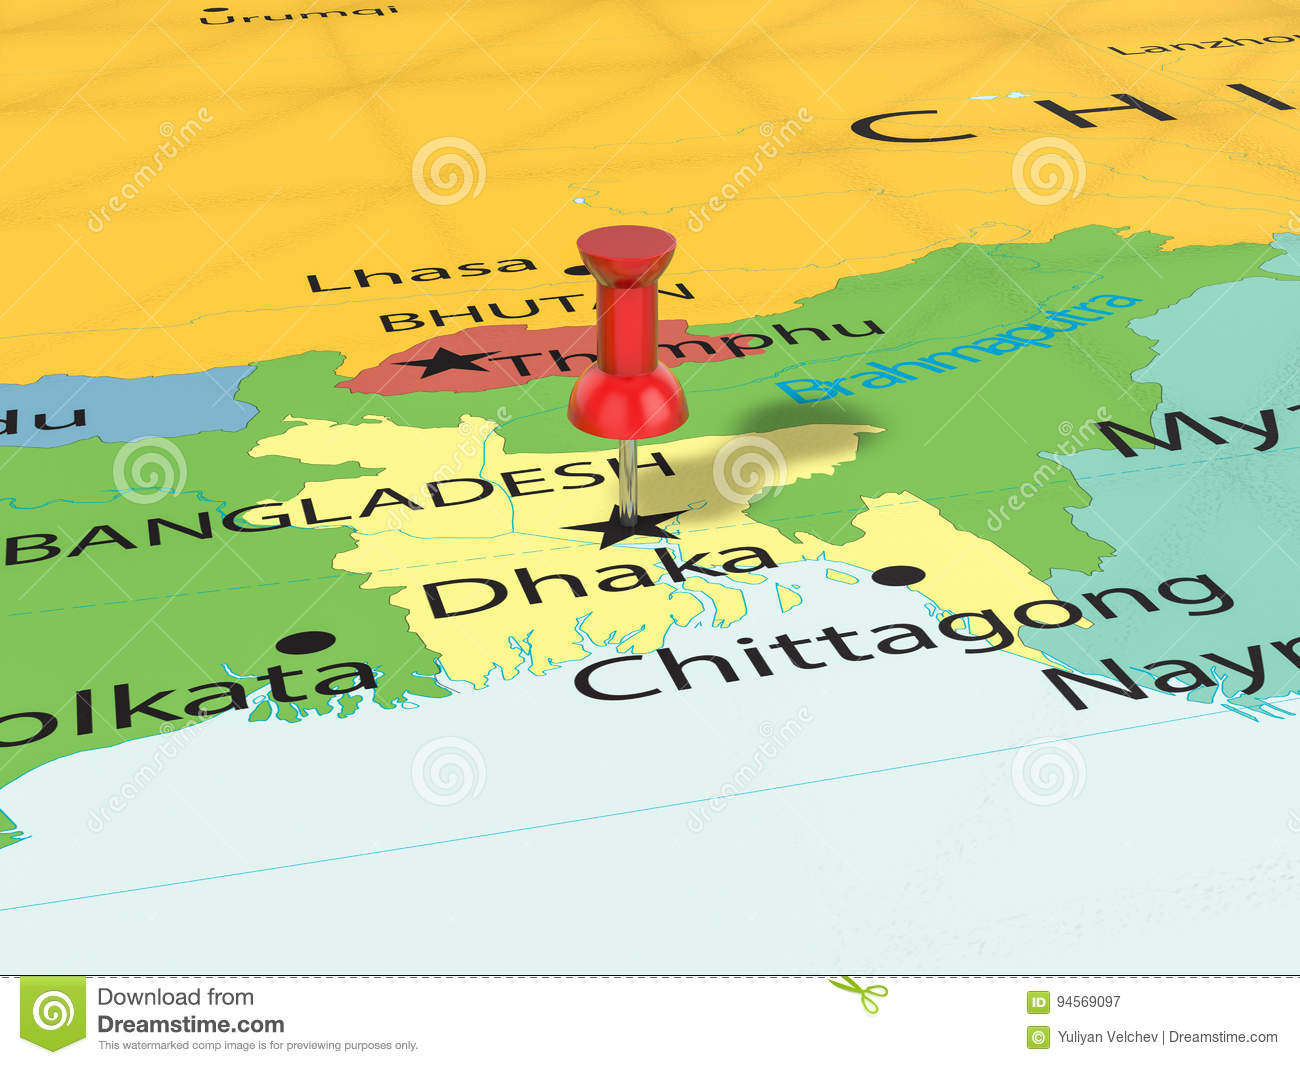 Pushpin on Dhaka map stock illustration. Illustration of pushpin ...